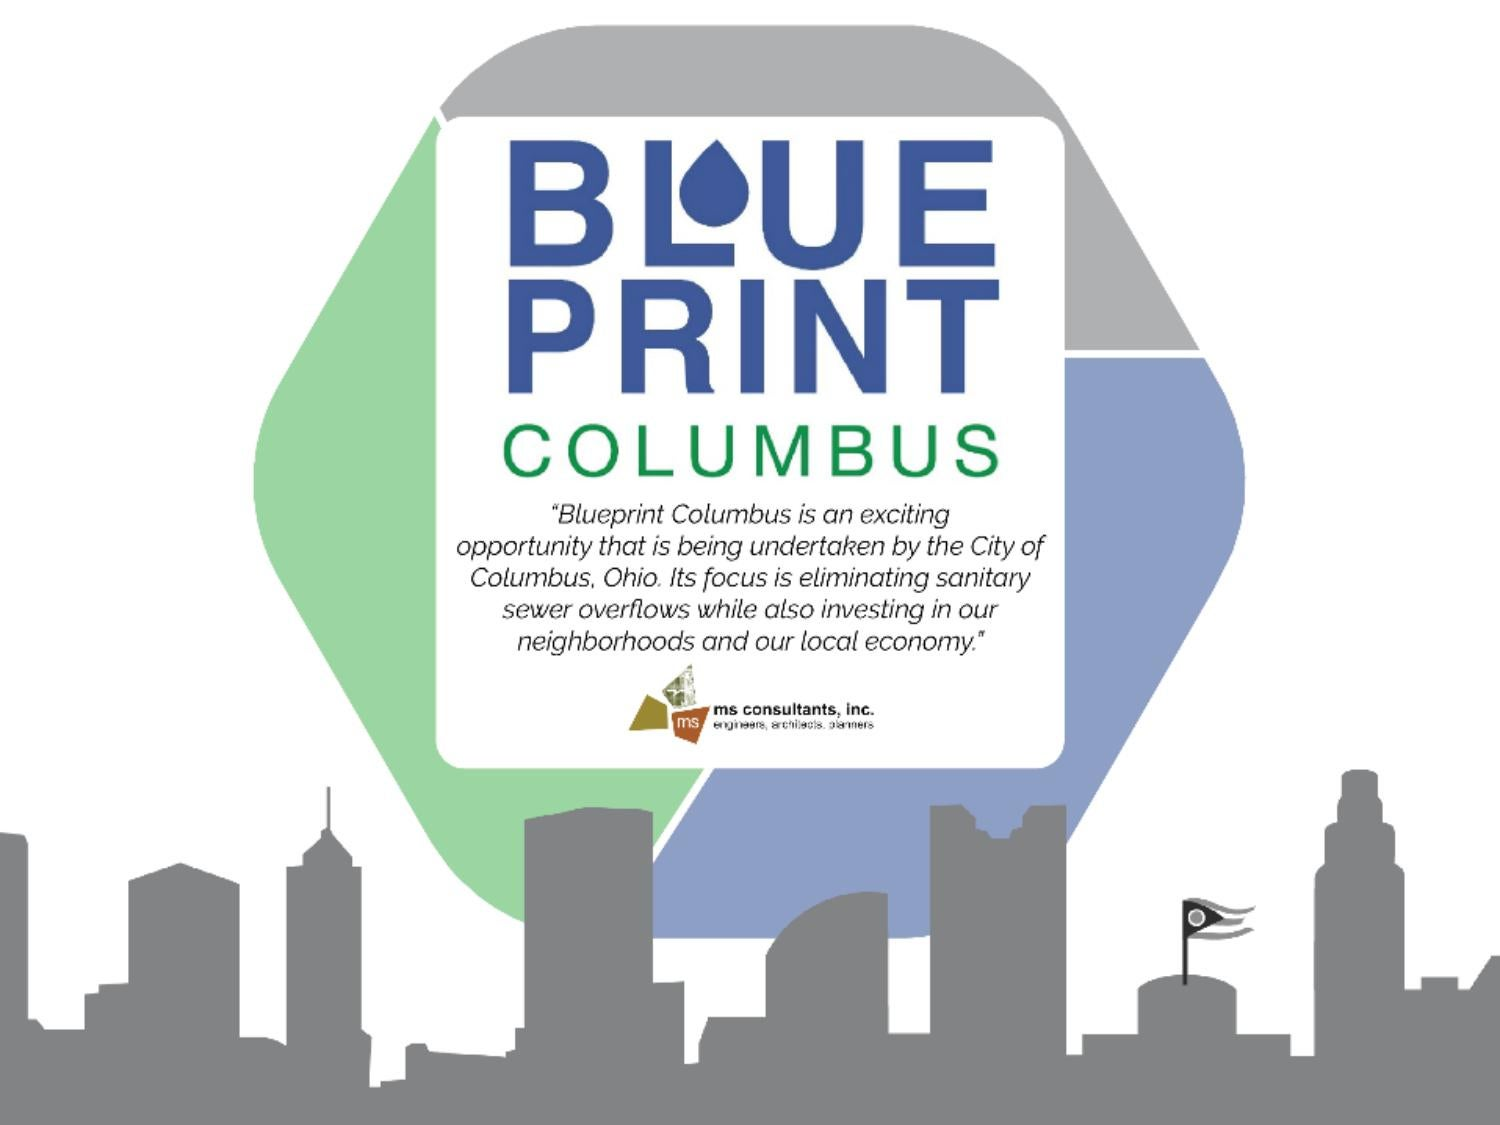 Blueprint columbus presentation ms consultants kari mackenbach by blueprint columbus presentation ms consultants kari mackenbach by pitt swanson school of engineering issuu malvernweather Image collections